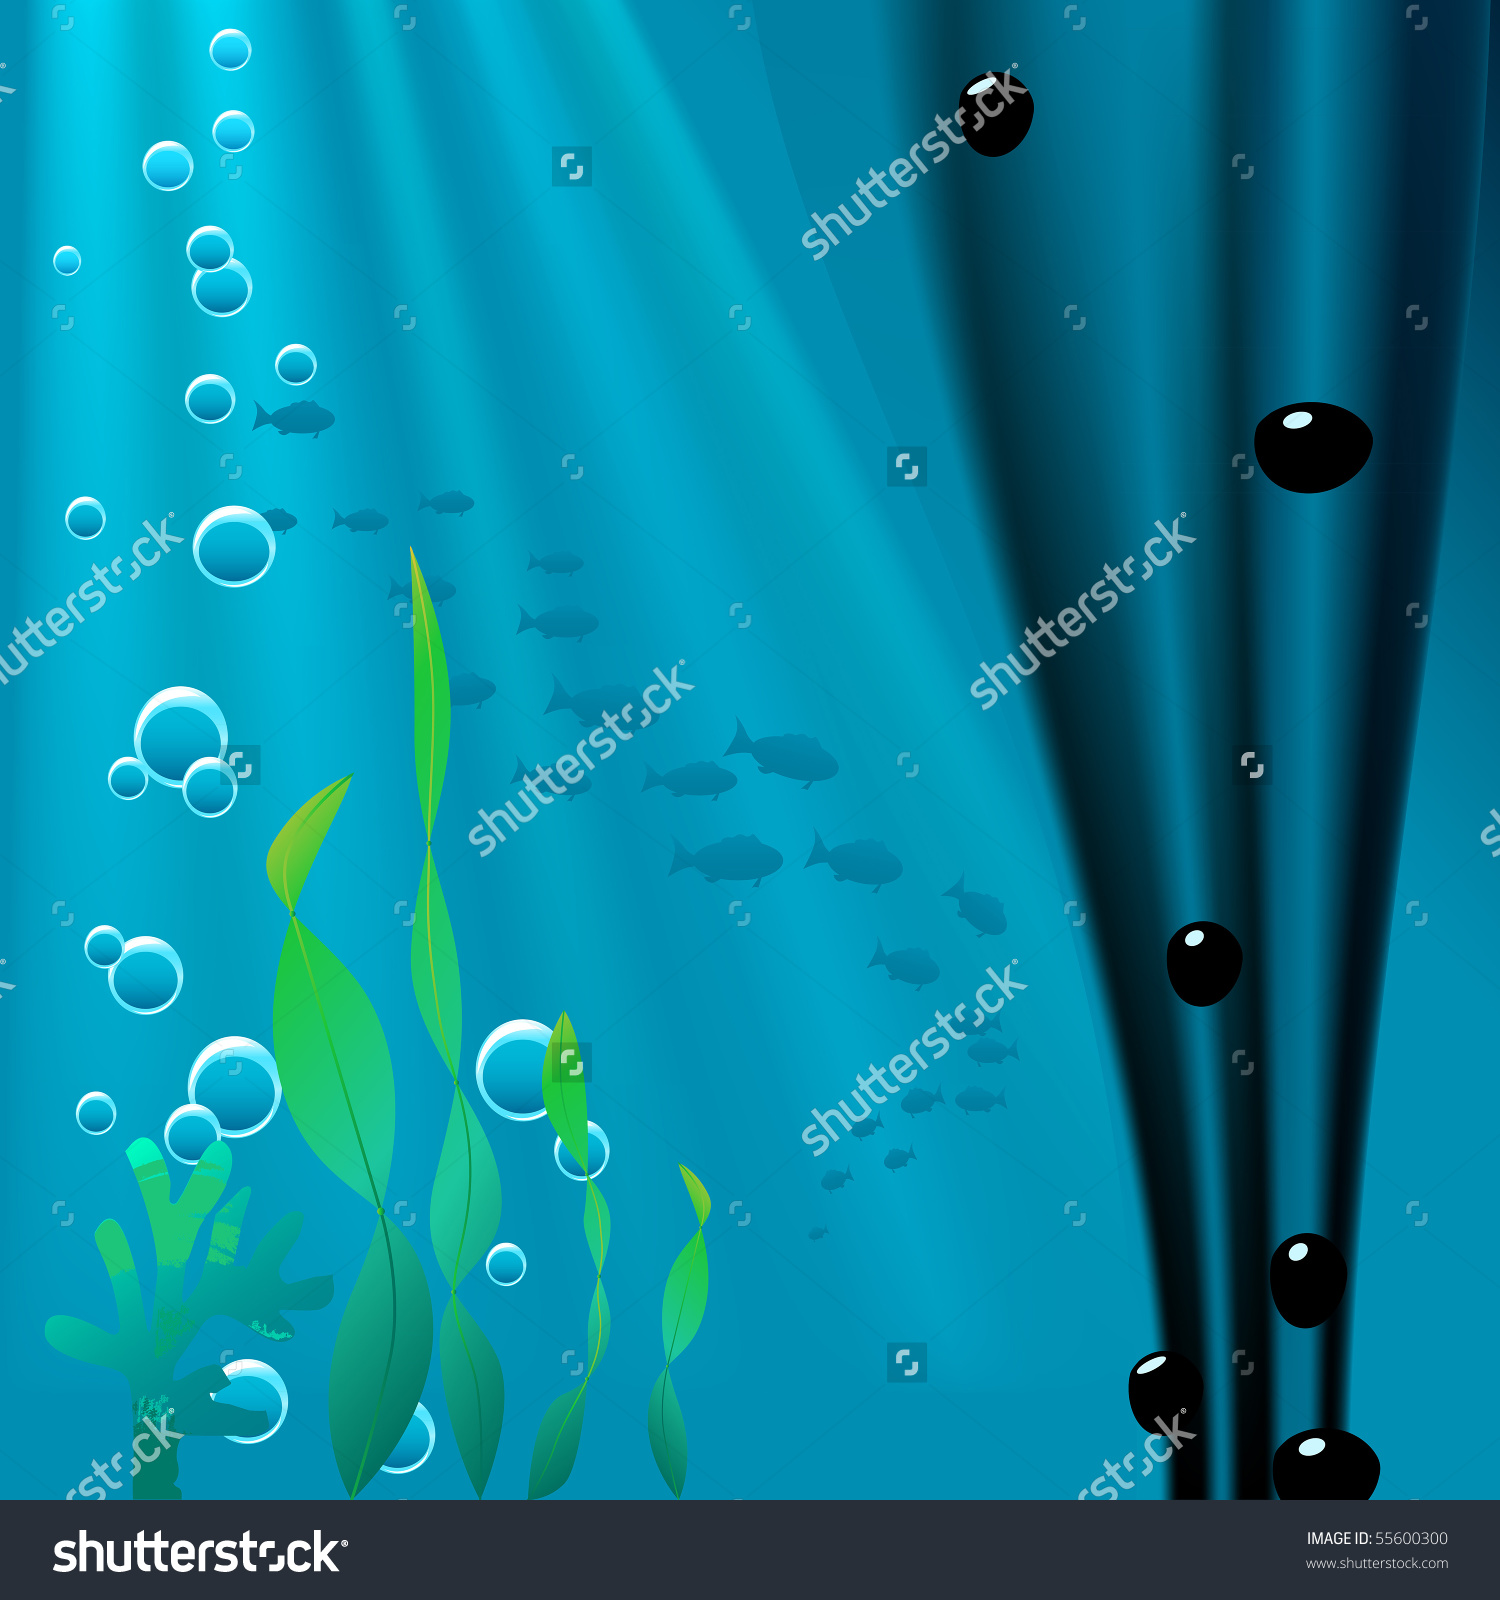 Underwater Scene With Sea Vegetation, Fish, Bubbles And Showing A.